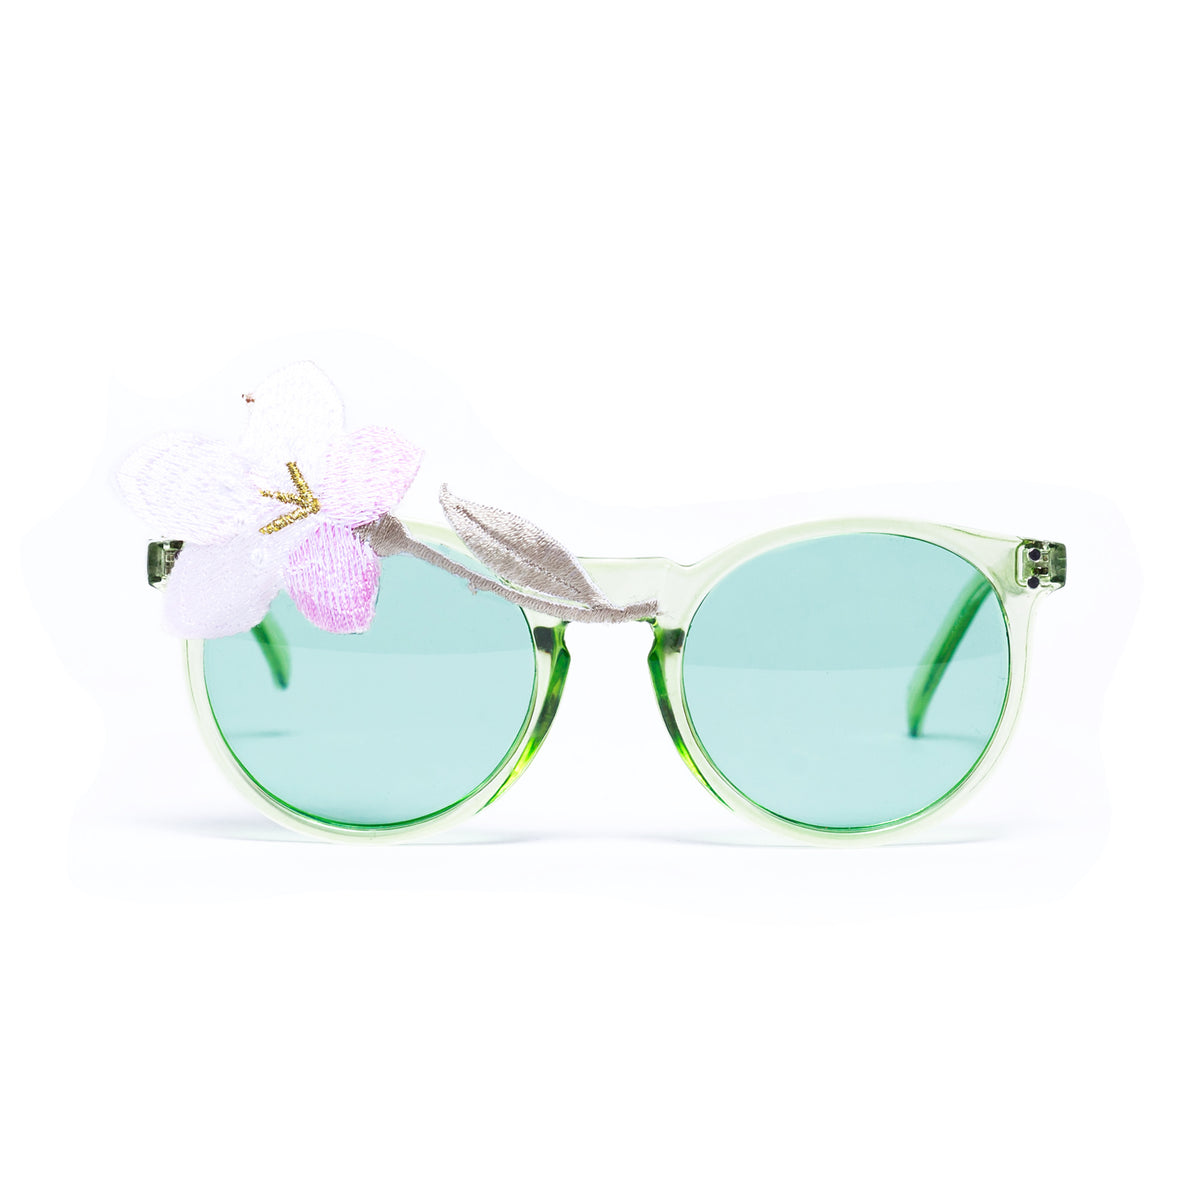 Green Garden for kids  SUNNIES + OPTICS TNEMNRODAsamplesale, sunglasses collection- NRODA